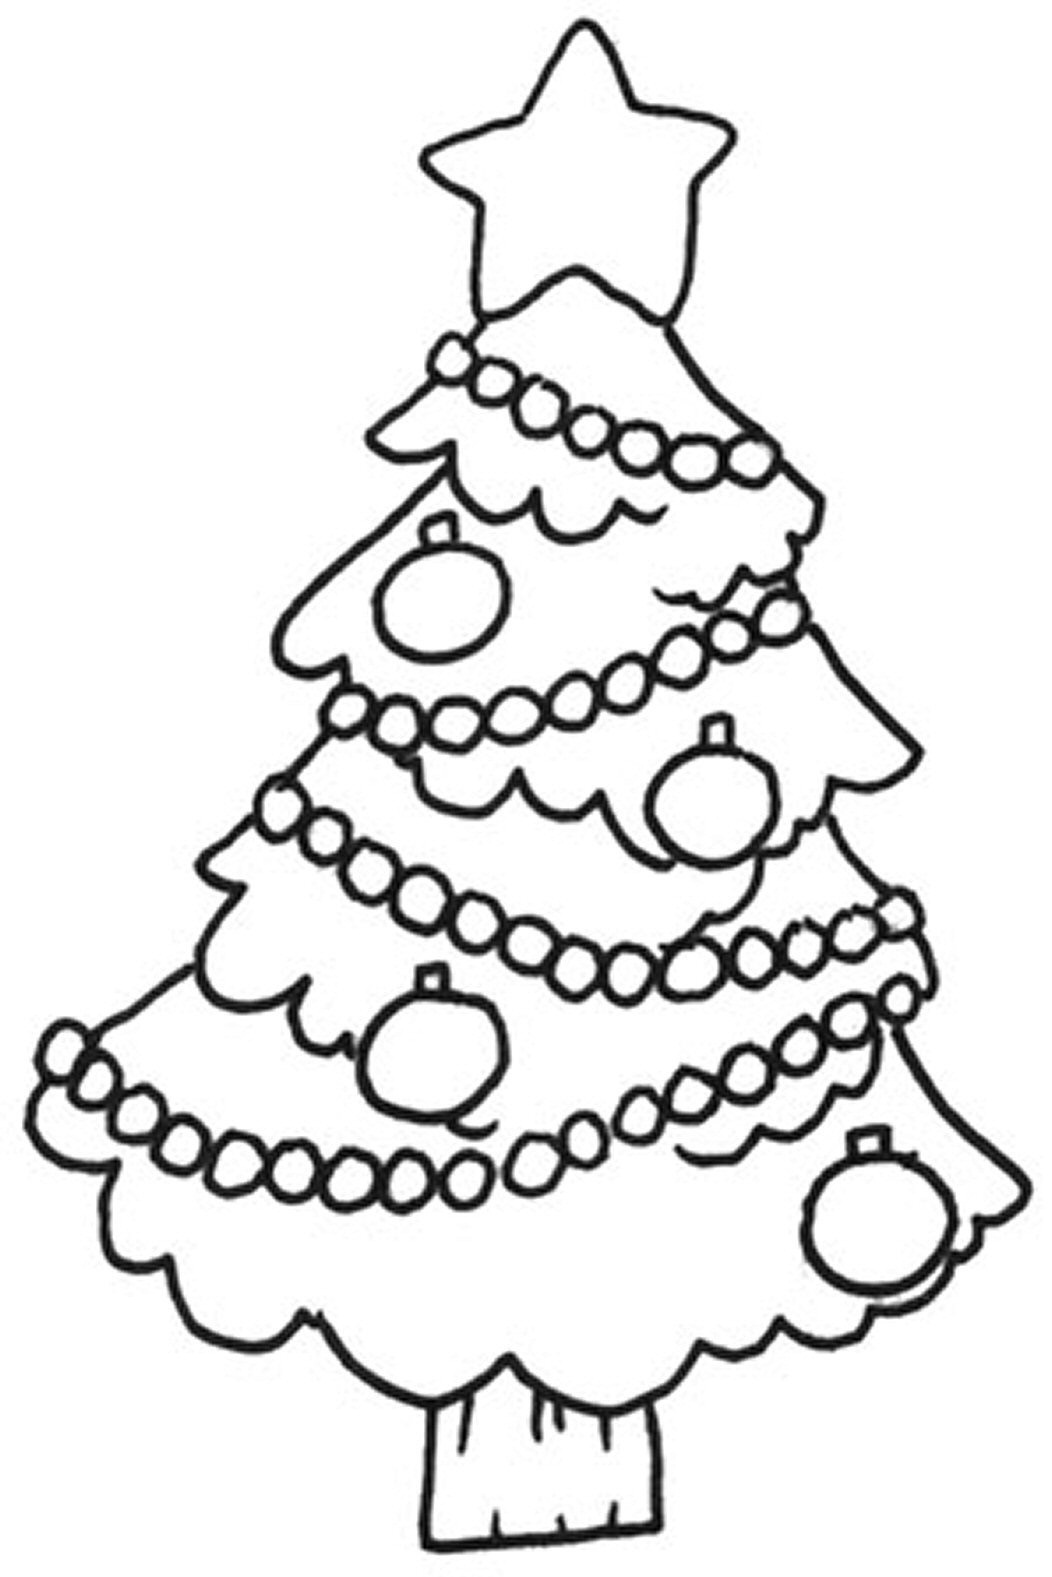 Coloring Pages Coloring Pages Christmas Ornaments Printable free printable christmas tree coloring pages for kids pages